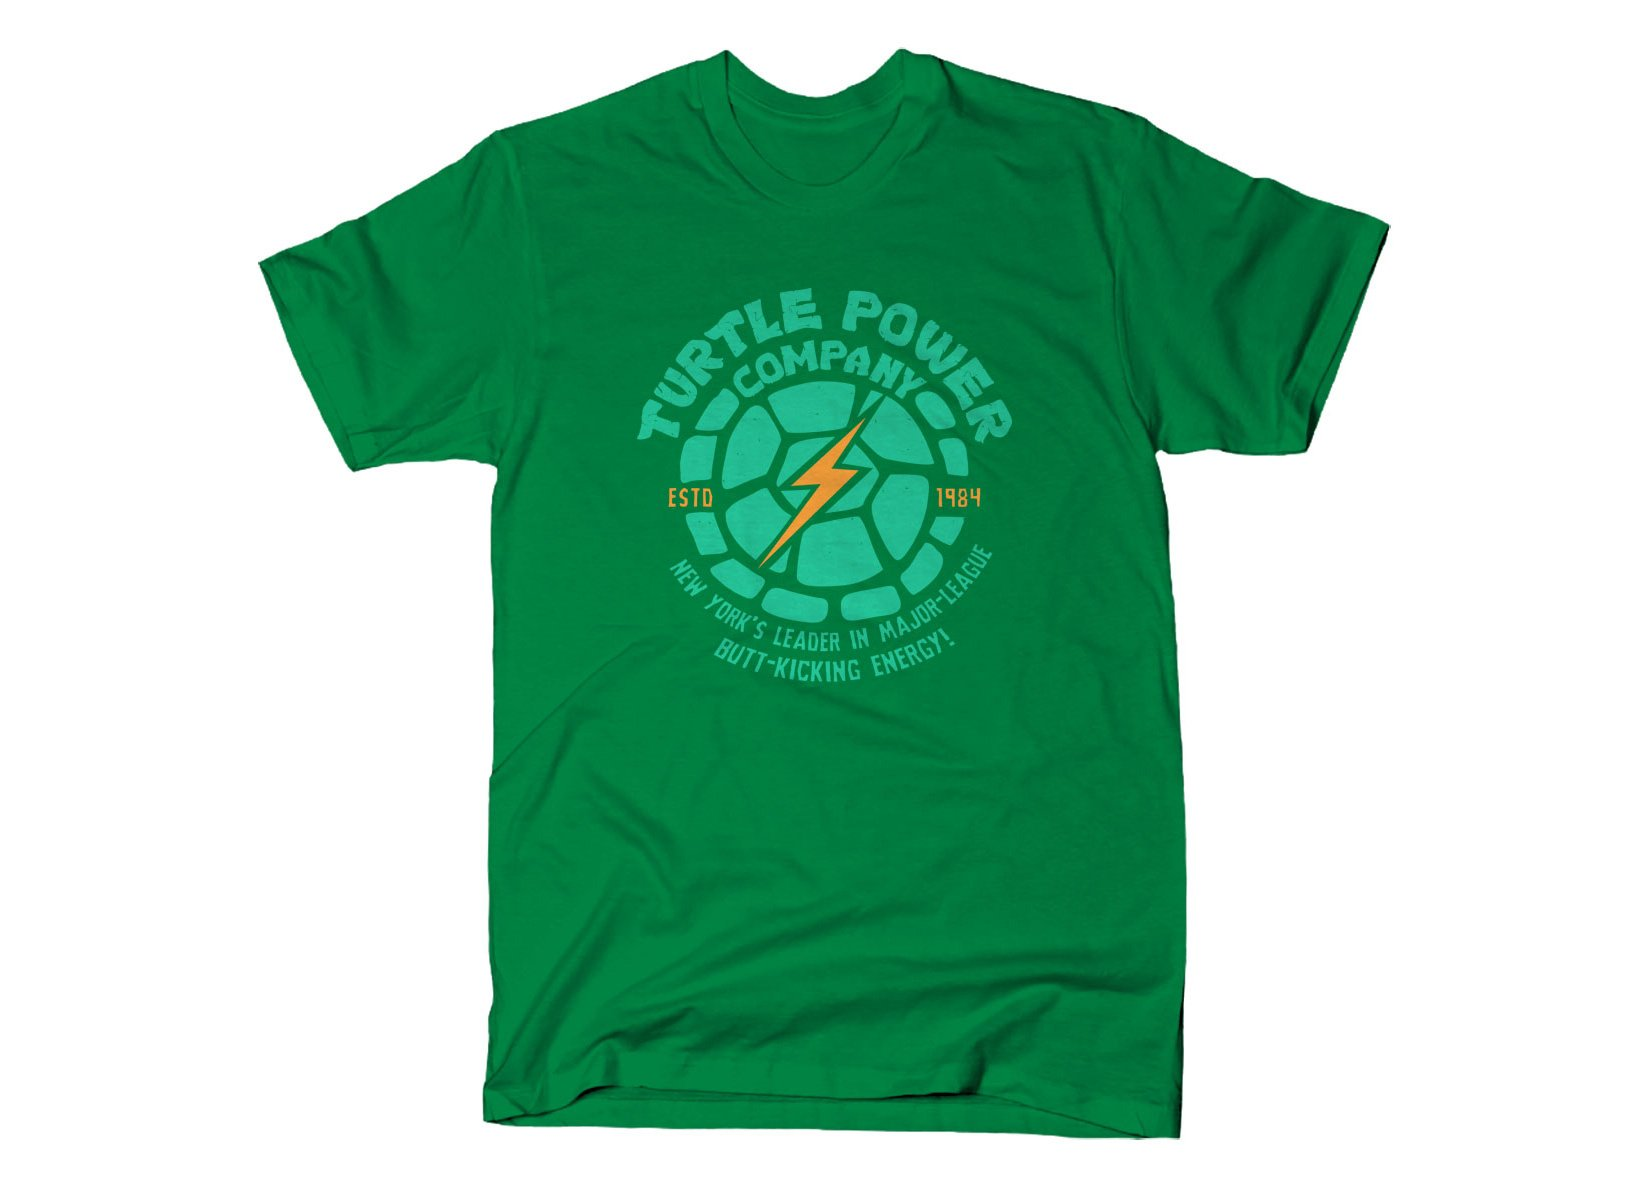 Turtle Power Company on Mens T-Shirt